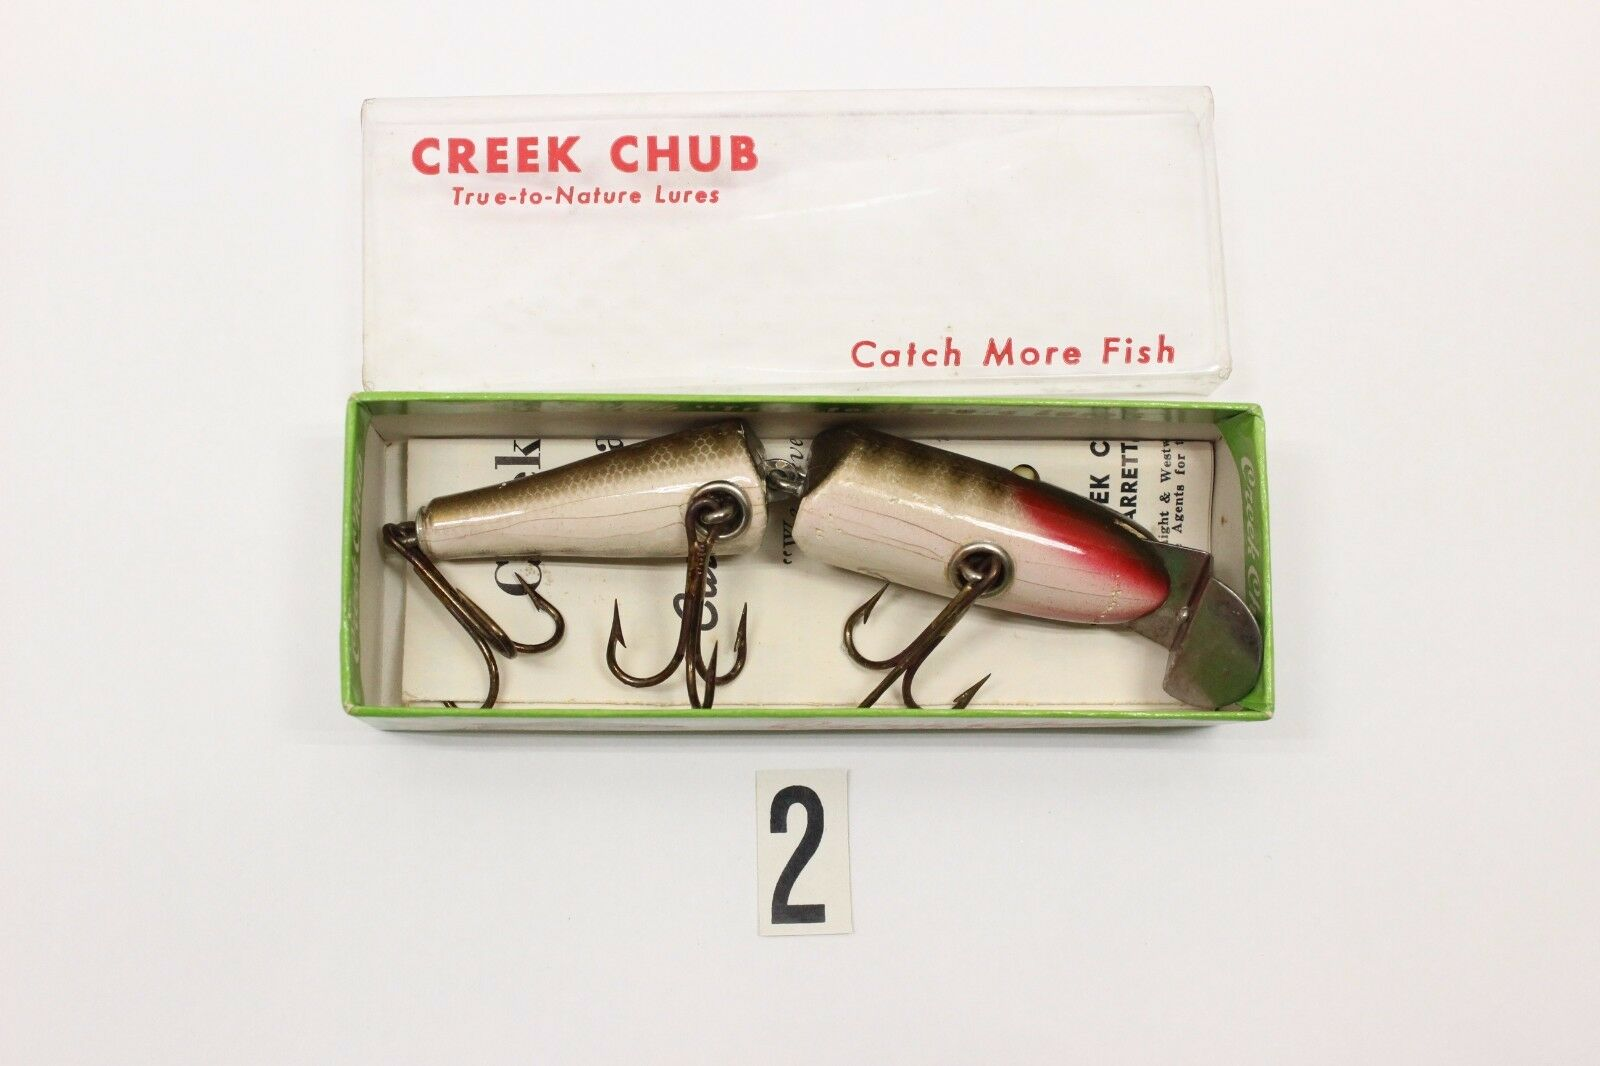 Creek Chub Lure Co. No 2600 Fishing Lure in  Box  hot limited edition